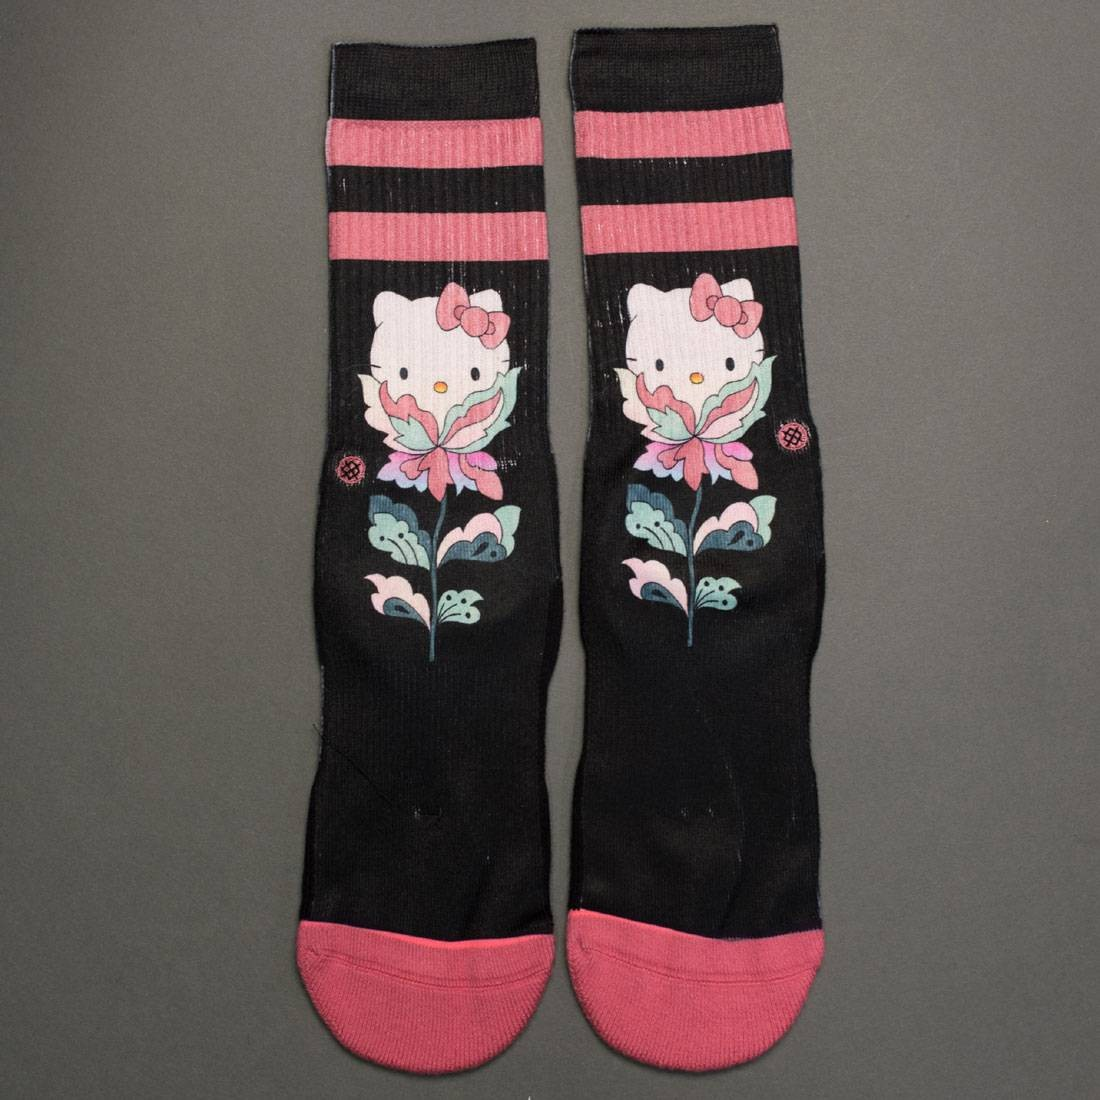 431a11cbe Stance x Hello Kitty Women Flower Friend Socks black